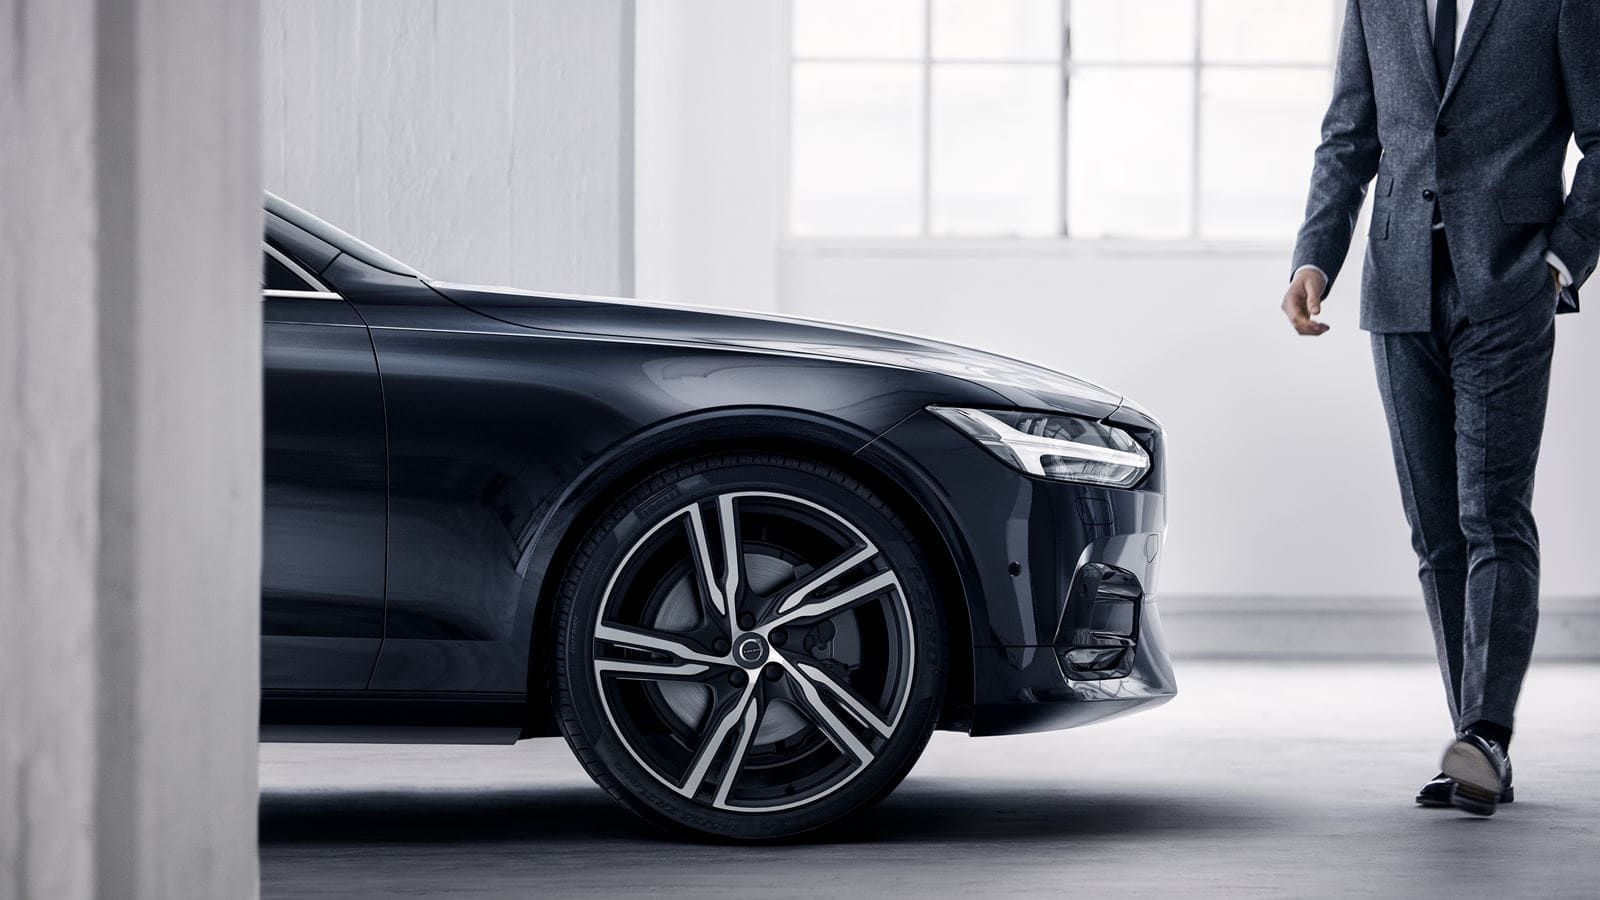 2018 Volvo S90 front exterior.jpg